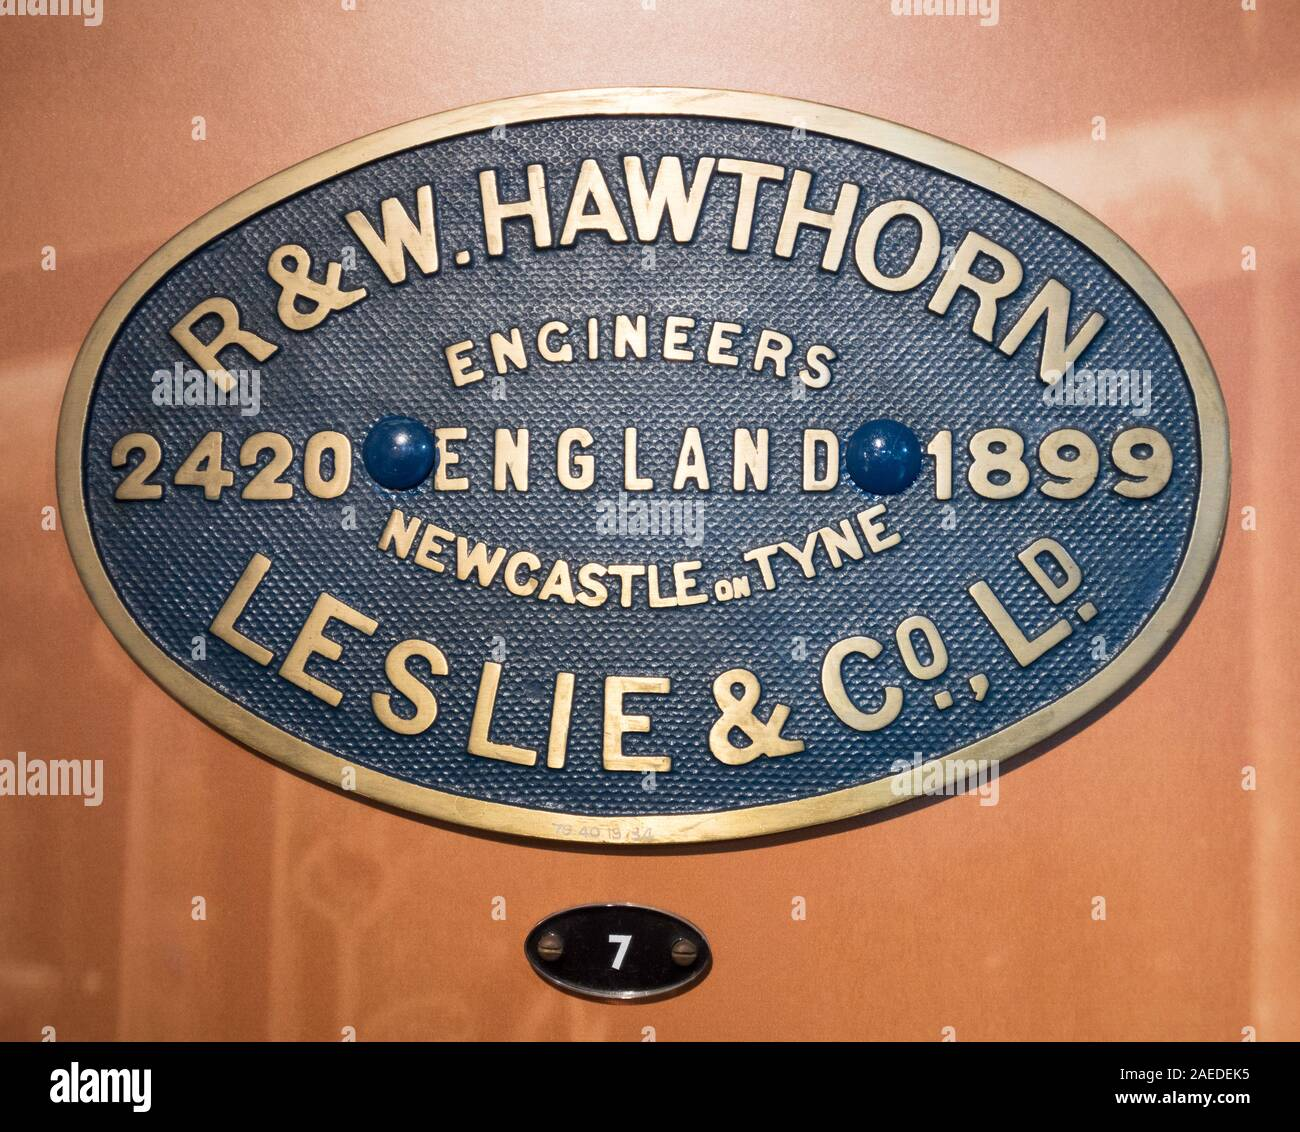 works-plate-from-1899-rw-hawthorn-leslie